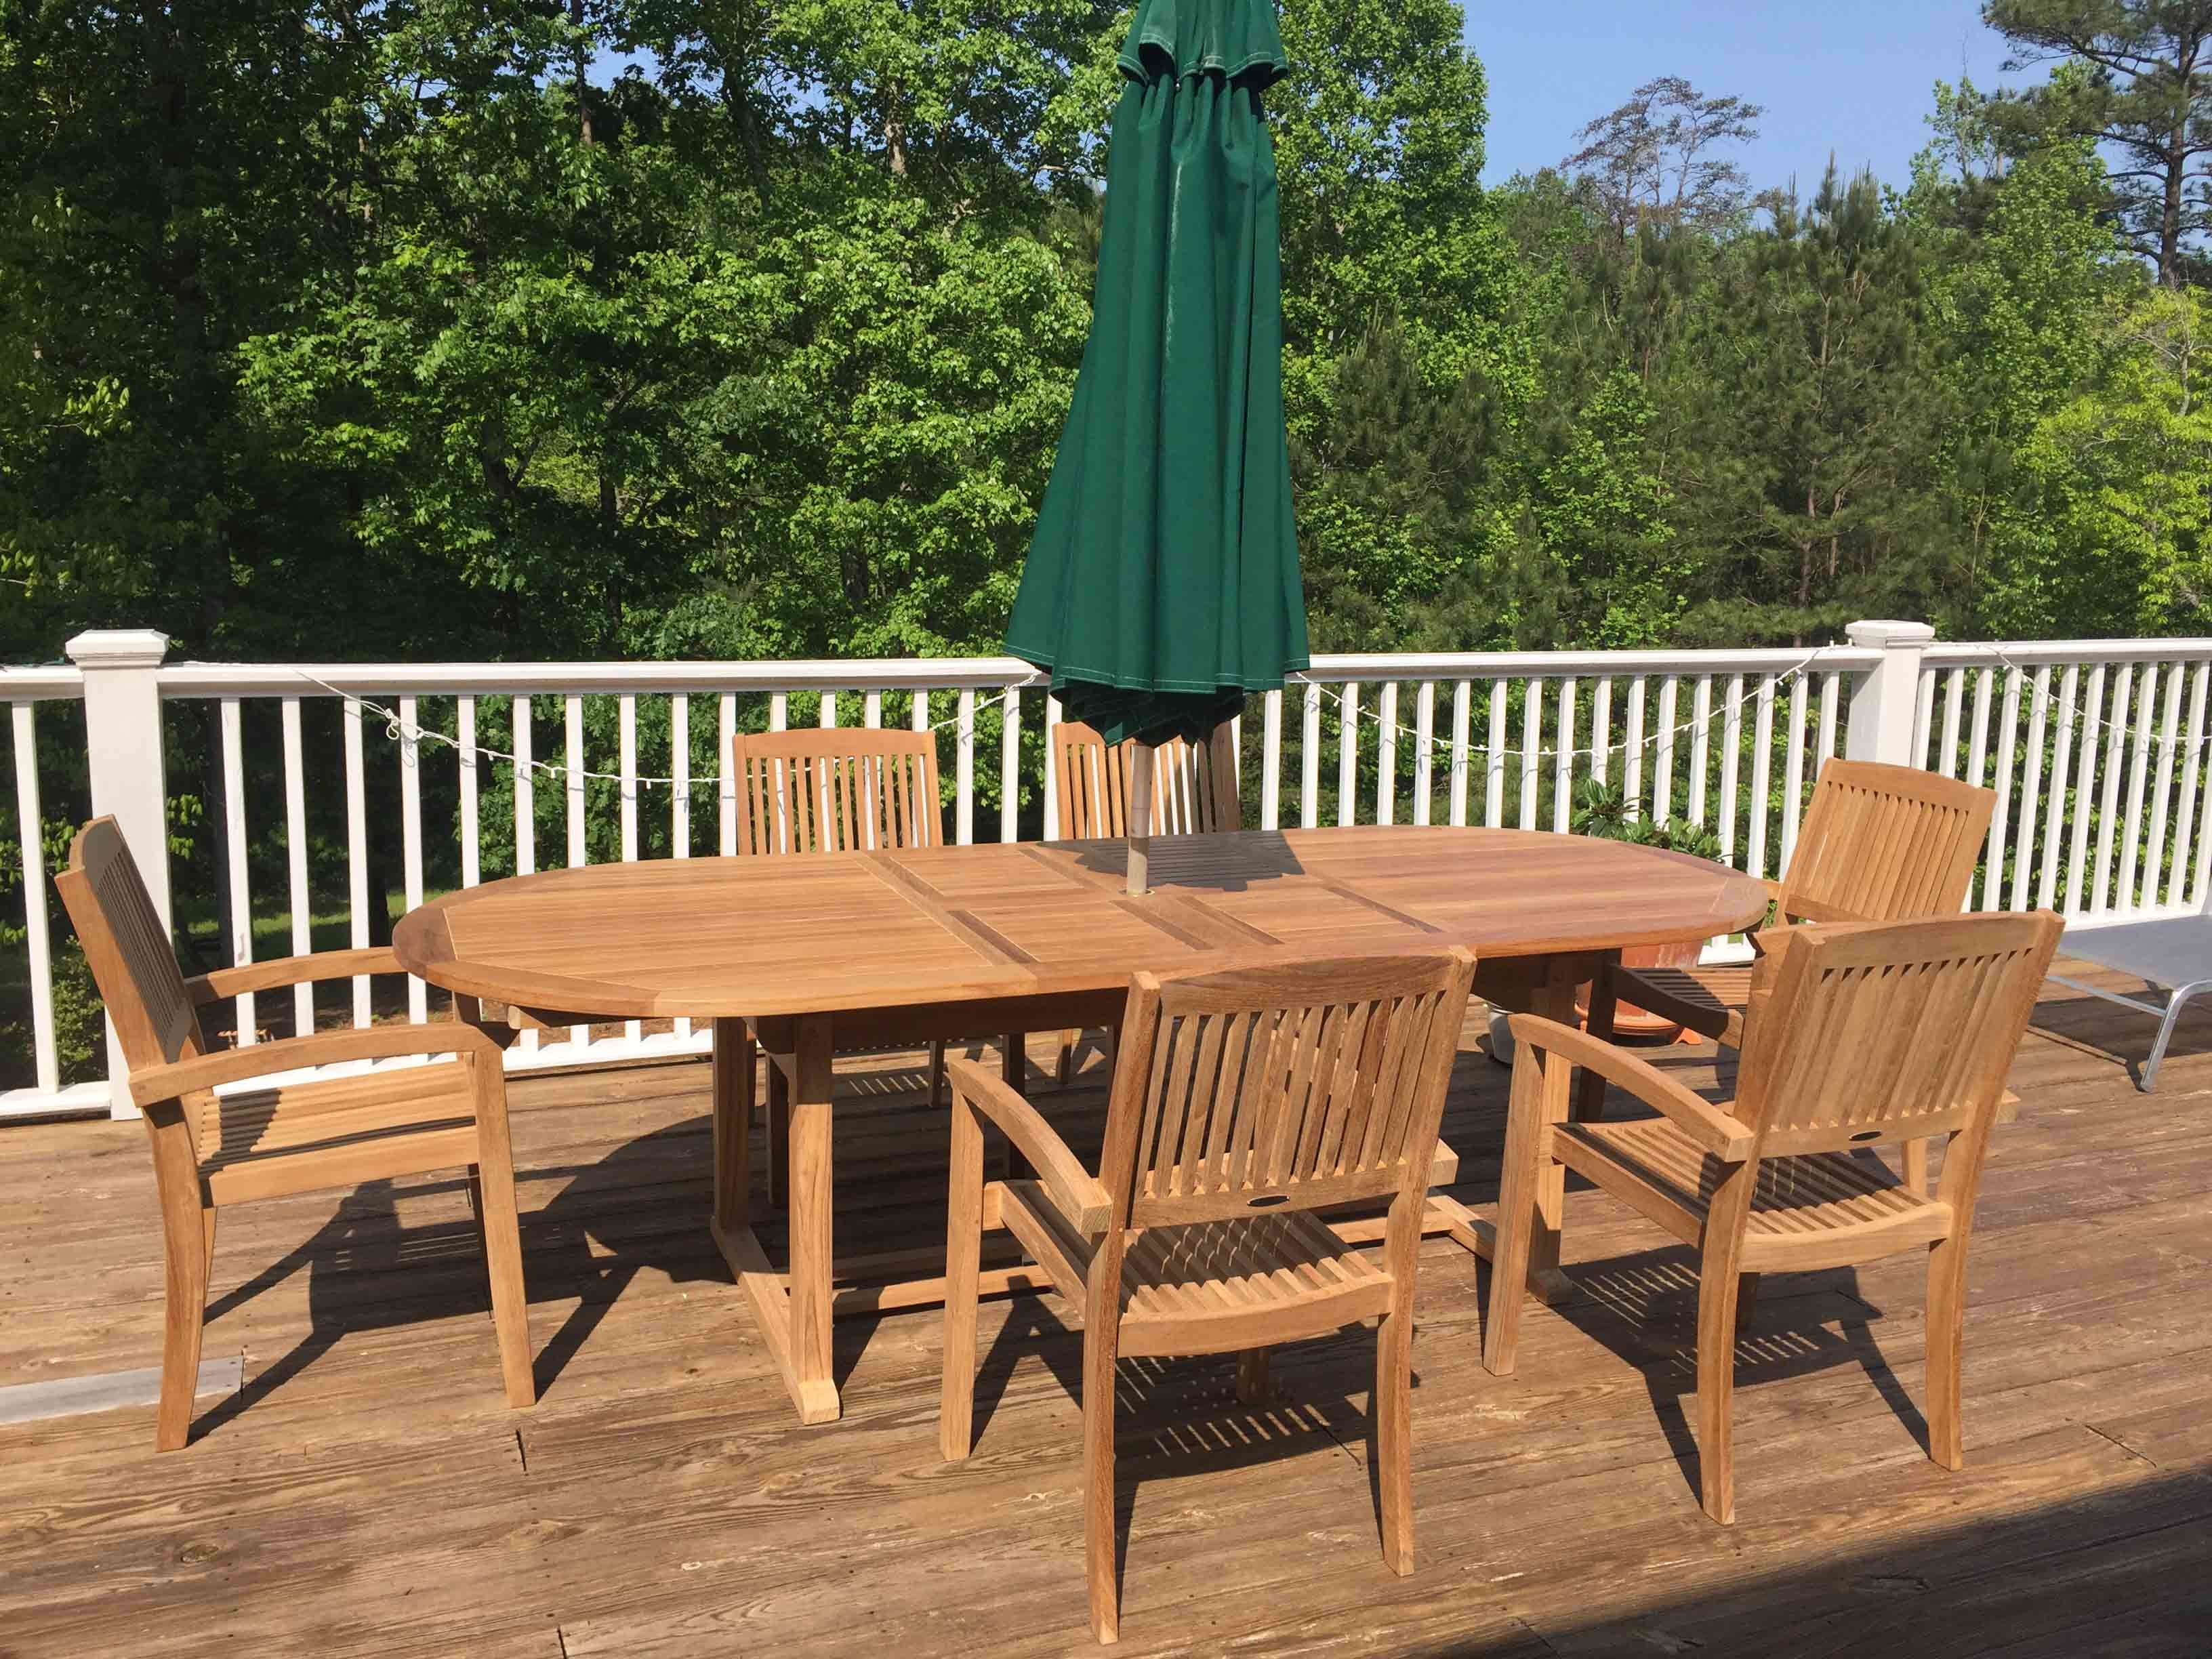 Awesome Outdoor Furniture Roswell Ga #1: Outdoor Furniture Roswell Ga. Atlanta Teak Furniture In Atlanta GA 678 429 2814